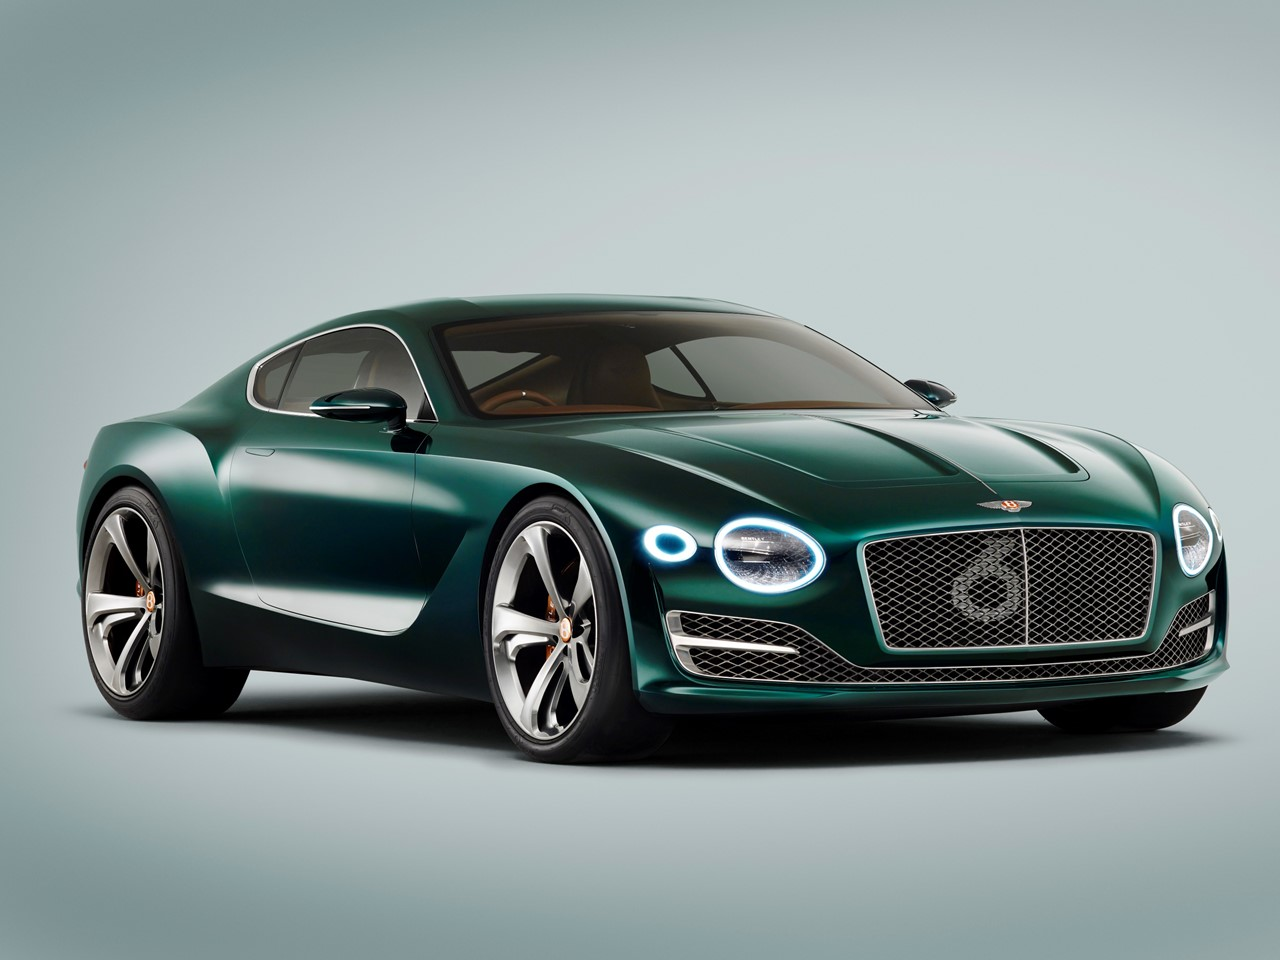 bentley year model cars the photo pin gallery for a new redesigned of and automobiles